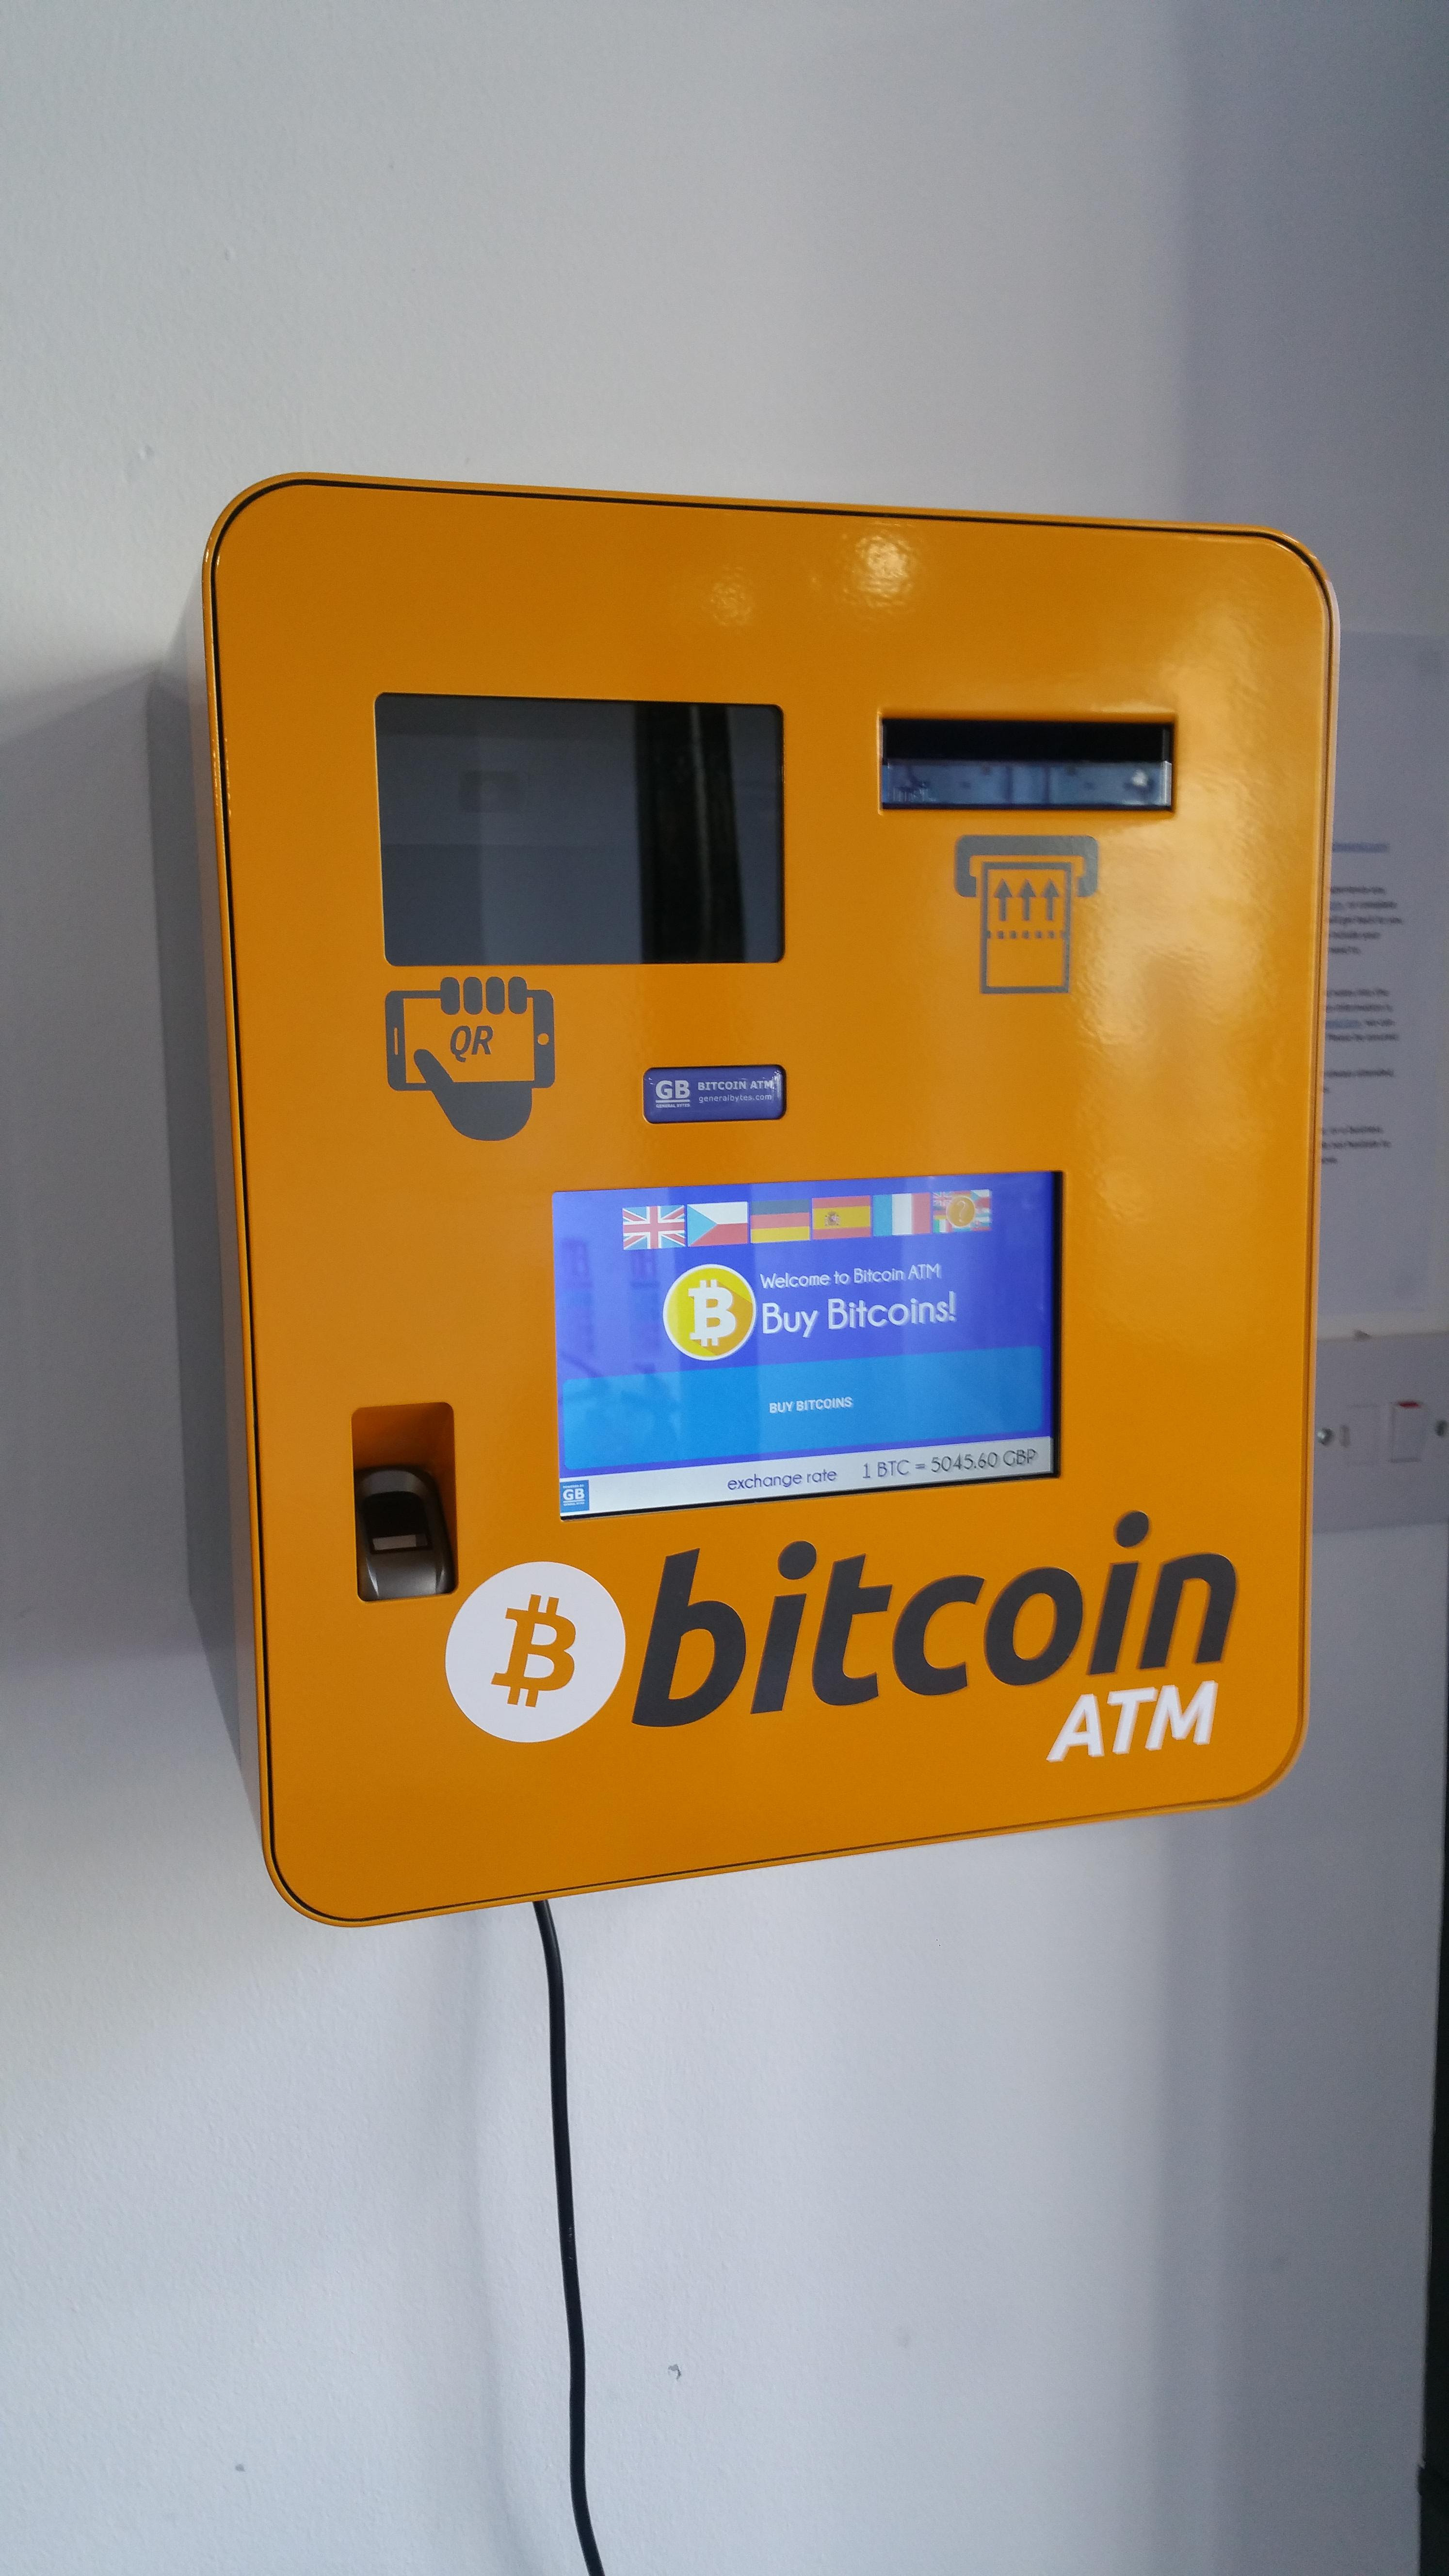 where can i buy bitcoin in uk